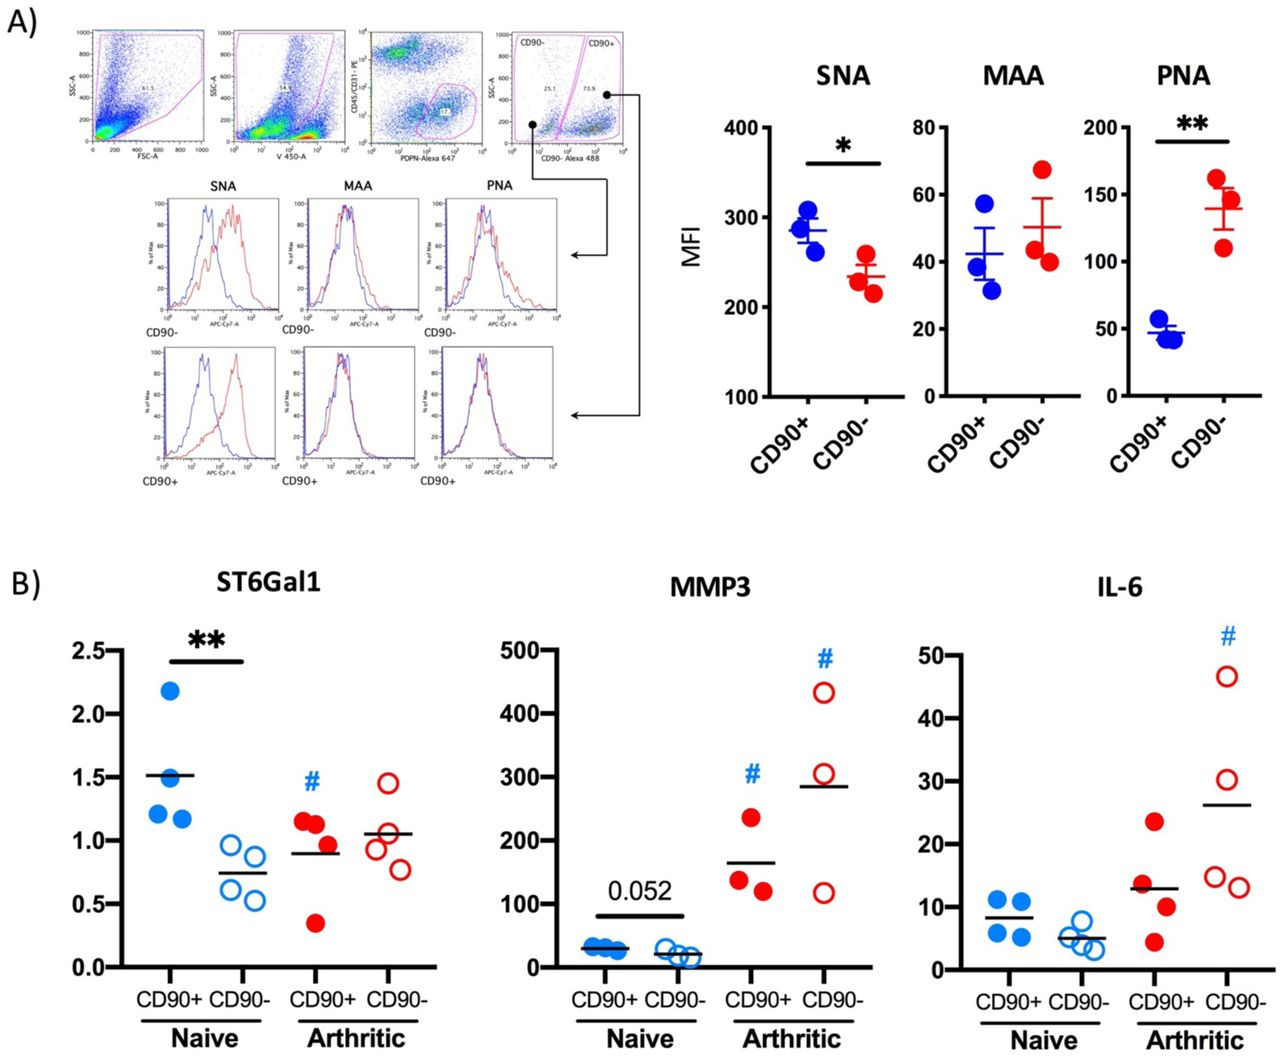 Reduction of α2-6 sialylation and ST6Gal1 levels is observed only in sublining CD90+ synovial fibroblasts. a) Synovial fibroblasts from healthy mice were isolated from mouse joints and identified by flow cytometry as in Fig. 1 (Zombie Violet-, CD45-, CD31-, Podoplanin+), separated into CD90+ and CD90-populations and stained with the biotinylated lectins SNA, MAAII and PNA and streptevadin-PE-Cy7. Graphs show the Mean Fluorescence Intensity for each cytokine and each dot represent cells from one individual mouse (n=3). b) Synovial fibroblasts from healthy and arthritic mice (n=4) were isolated from mouse joints as in (a) and RNA was purified using the RNeasy Mini Kit (Qiagen) according to manufacturer's instructions. Expression of IL-6, MMP3 and ST6Gal1 mRNA was quantified by RT-qPCR. Statistics: one tail unpaired t-test was used for statistics, **p